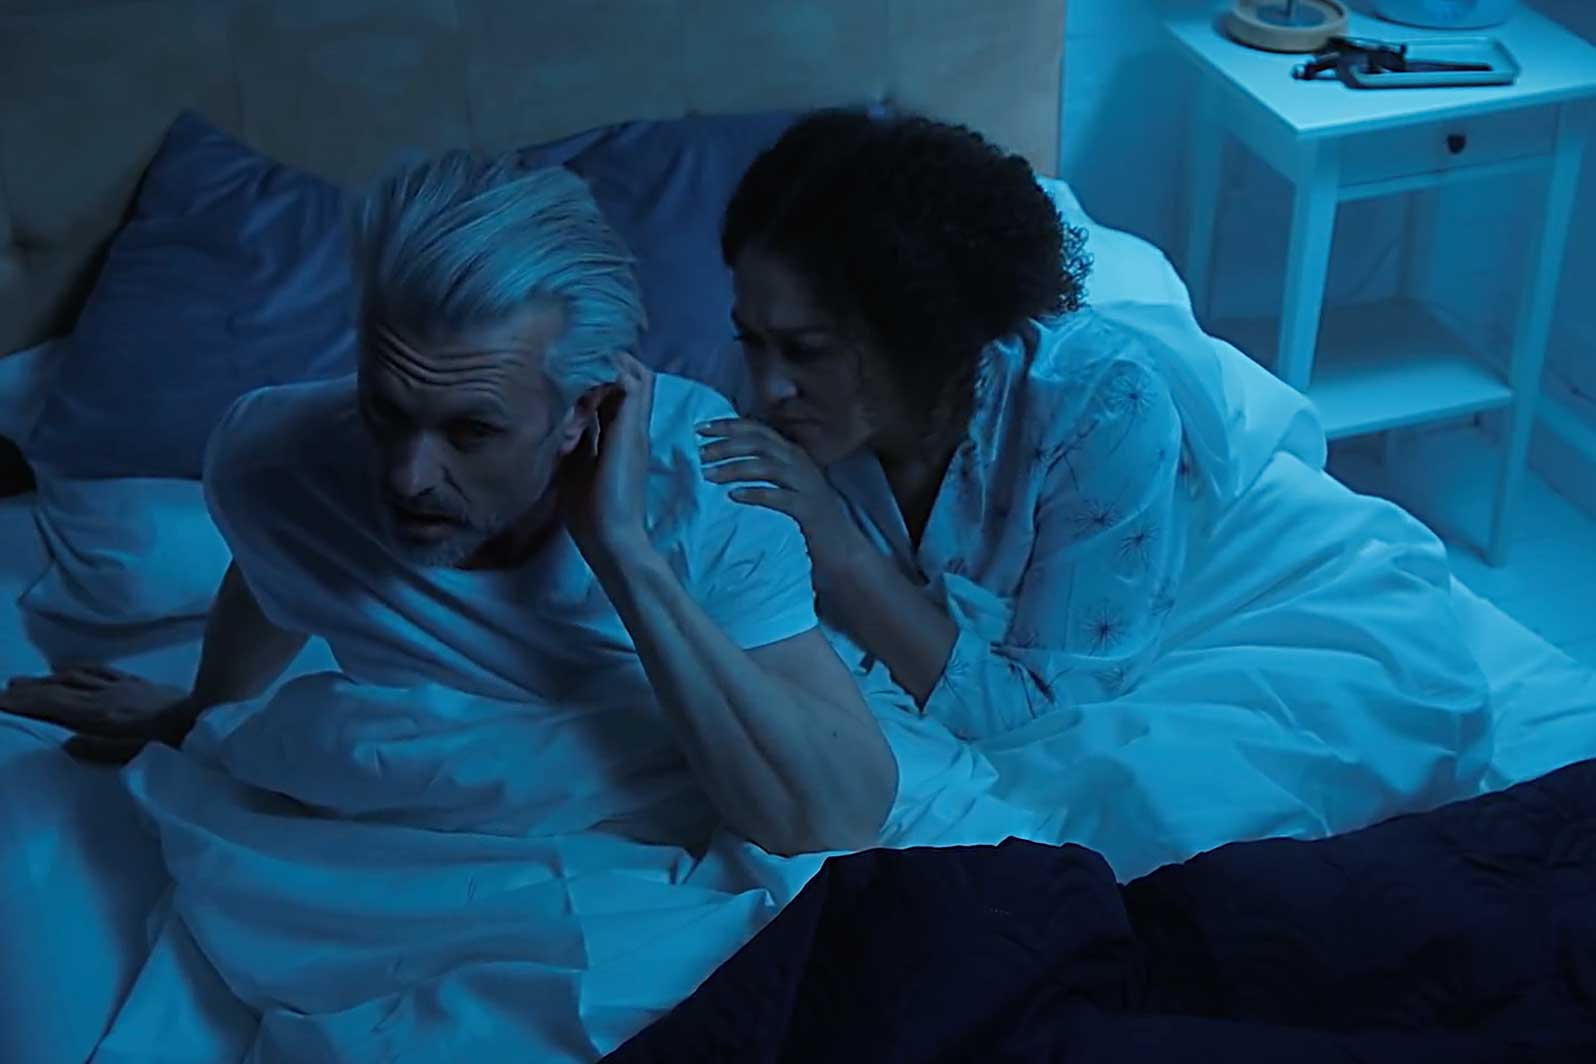 eXciteOSA for Snoring can help you and your bed partner sleep better